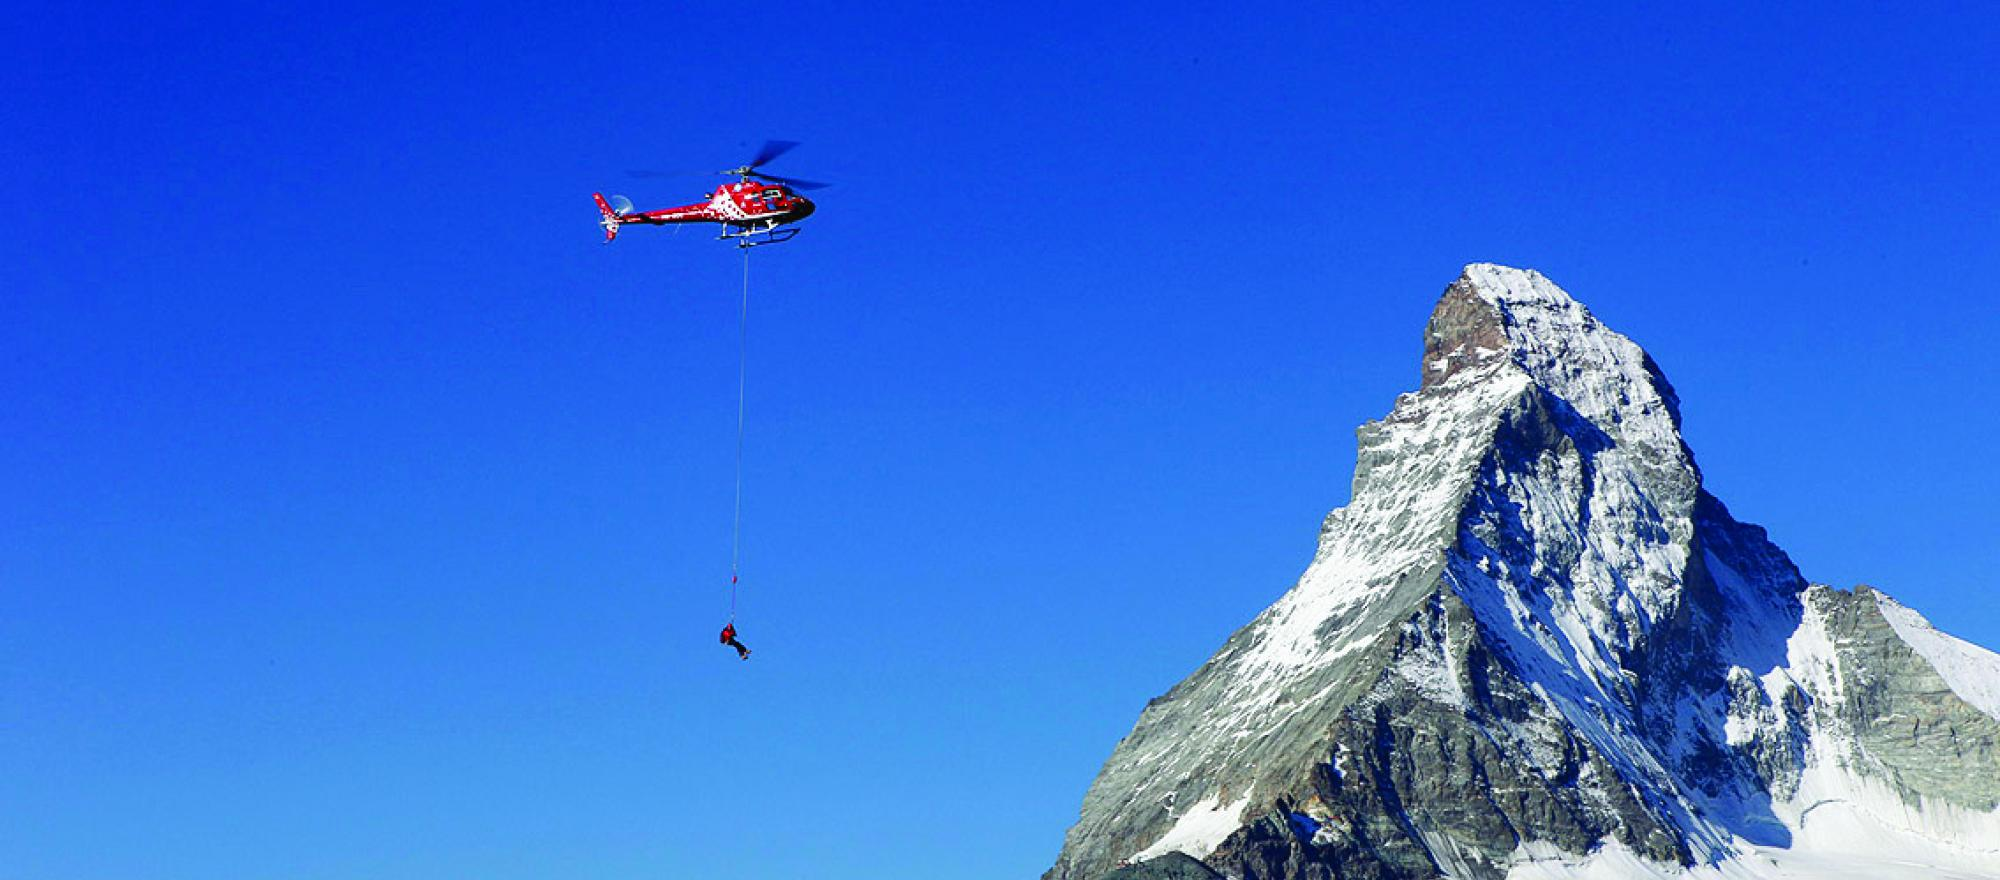 Helicopters have been assisting in rescue efforts in the aftermath of Nepal's earthquake.